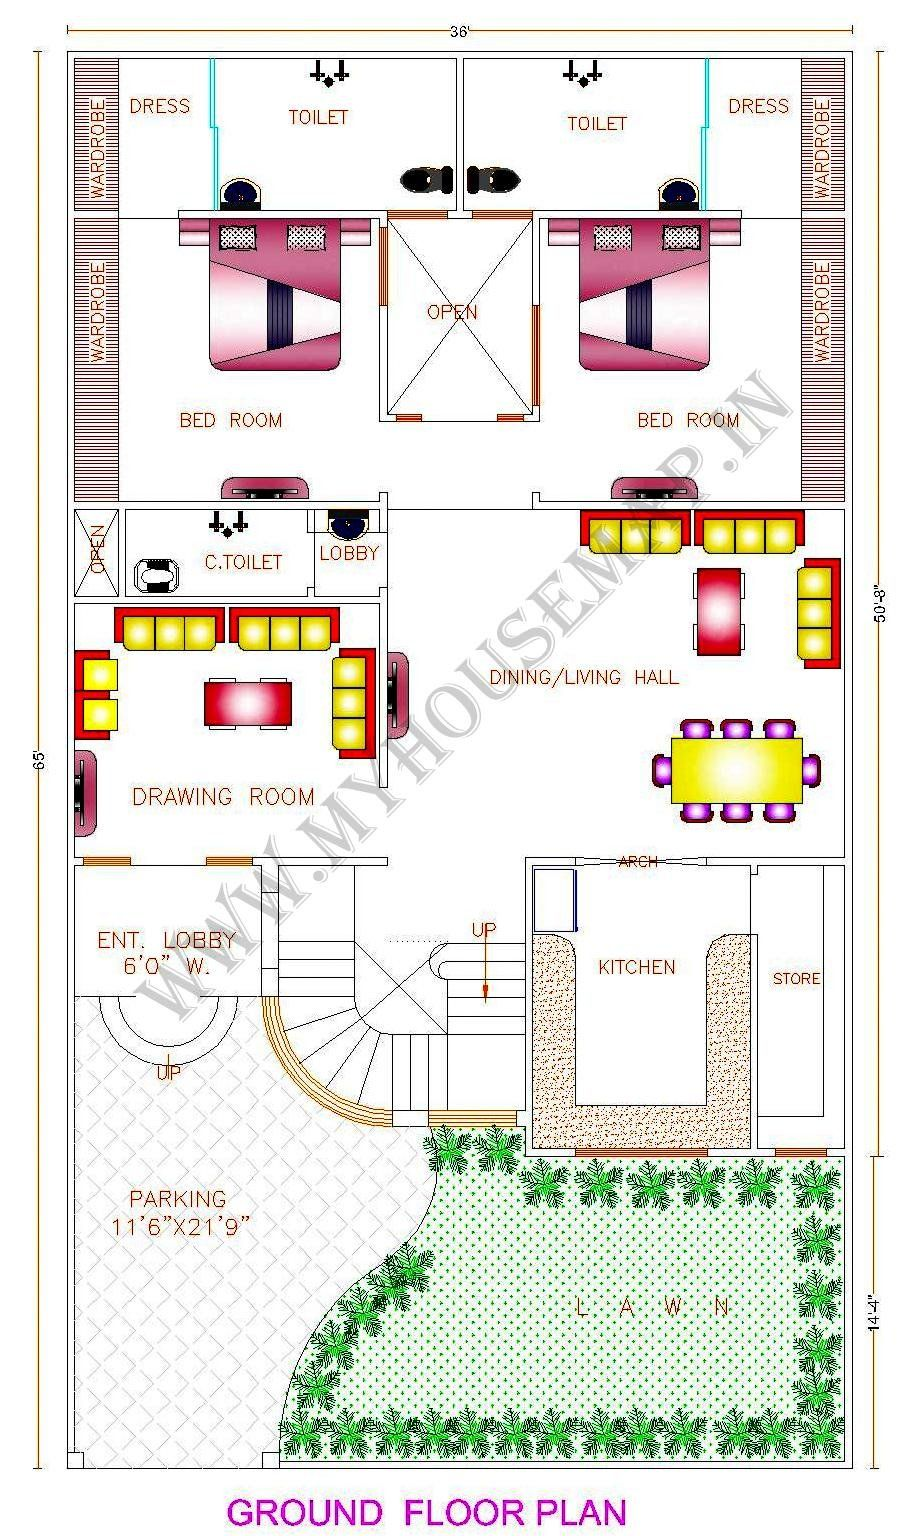 House Map Front Elevation Design House Map Building Design House Designs House Plans House Map 30x40 House Plans House Floor Design